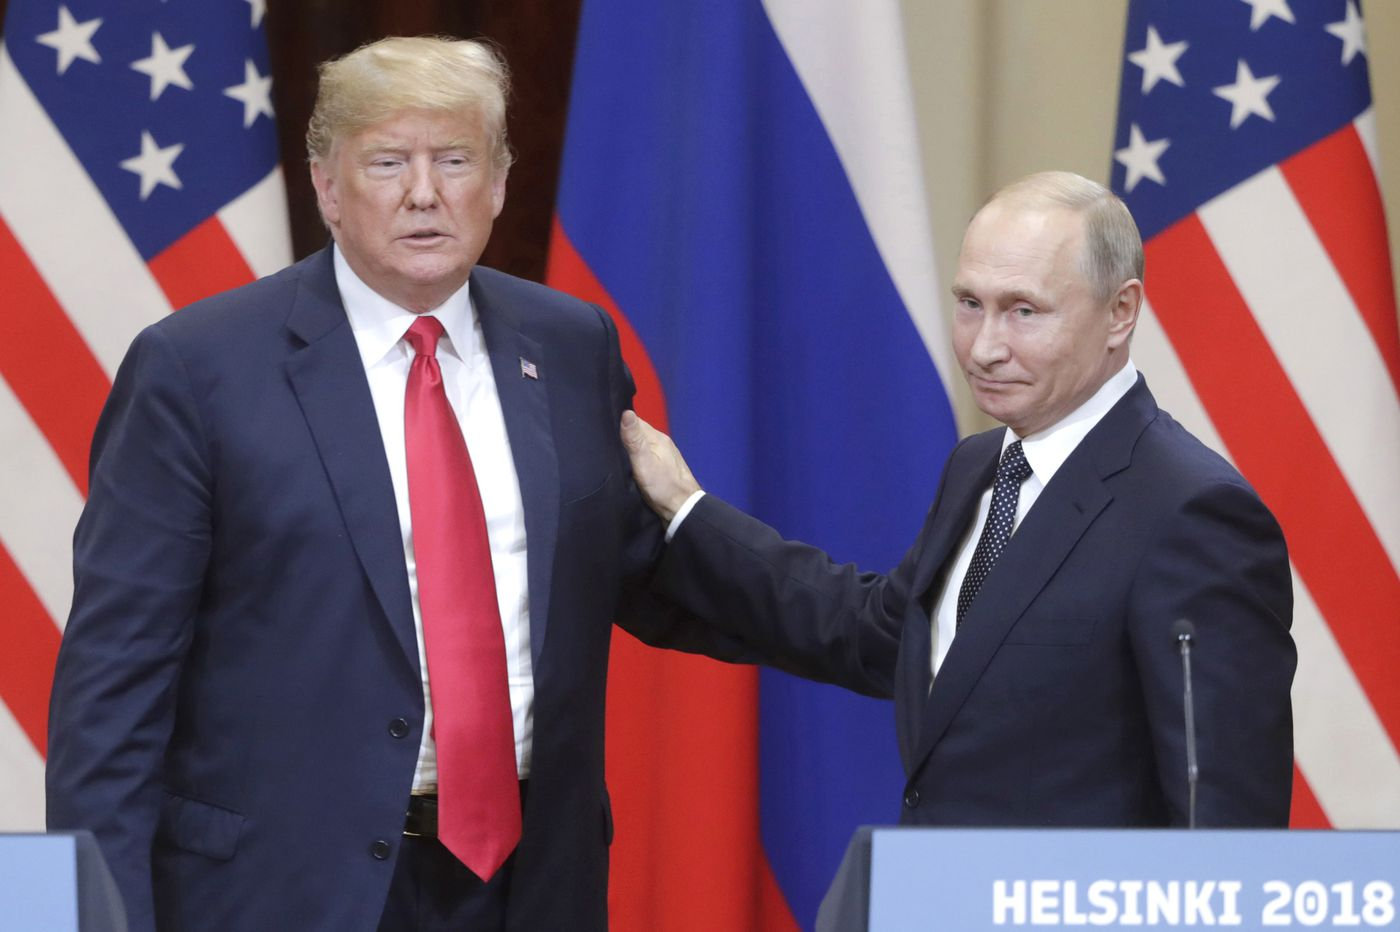 Are Trump's gifts to Putin the work of a gullible admirer rather than a mark of collusion? | Trudy Rubin